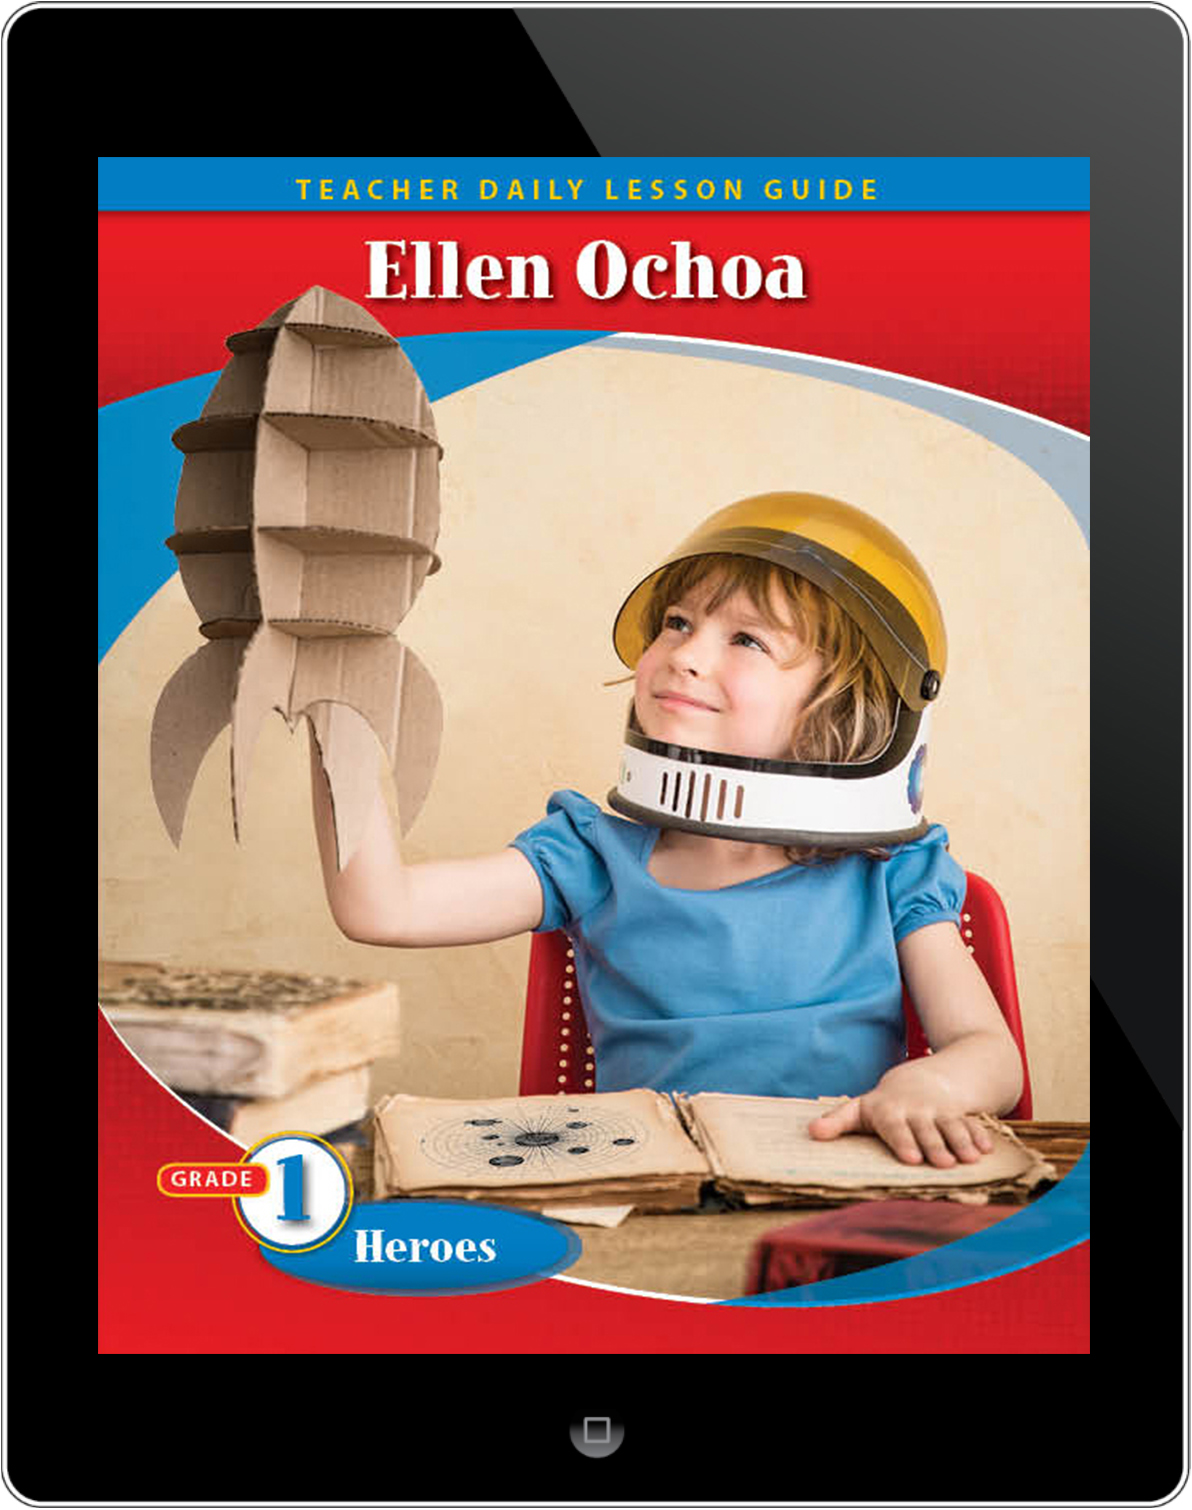 Pathways Grade 1 Heroes Unit: Ellen Ochoa Daily Lesson Guide 5 Year License